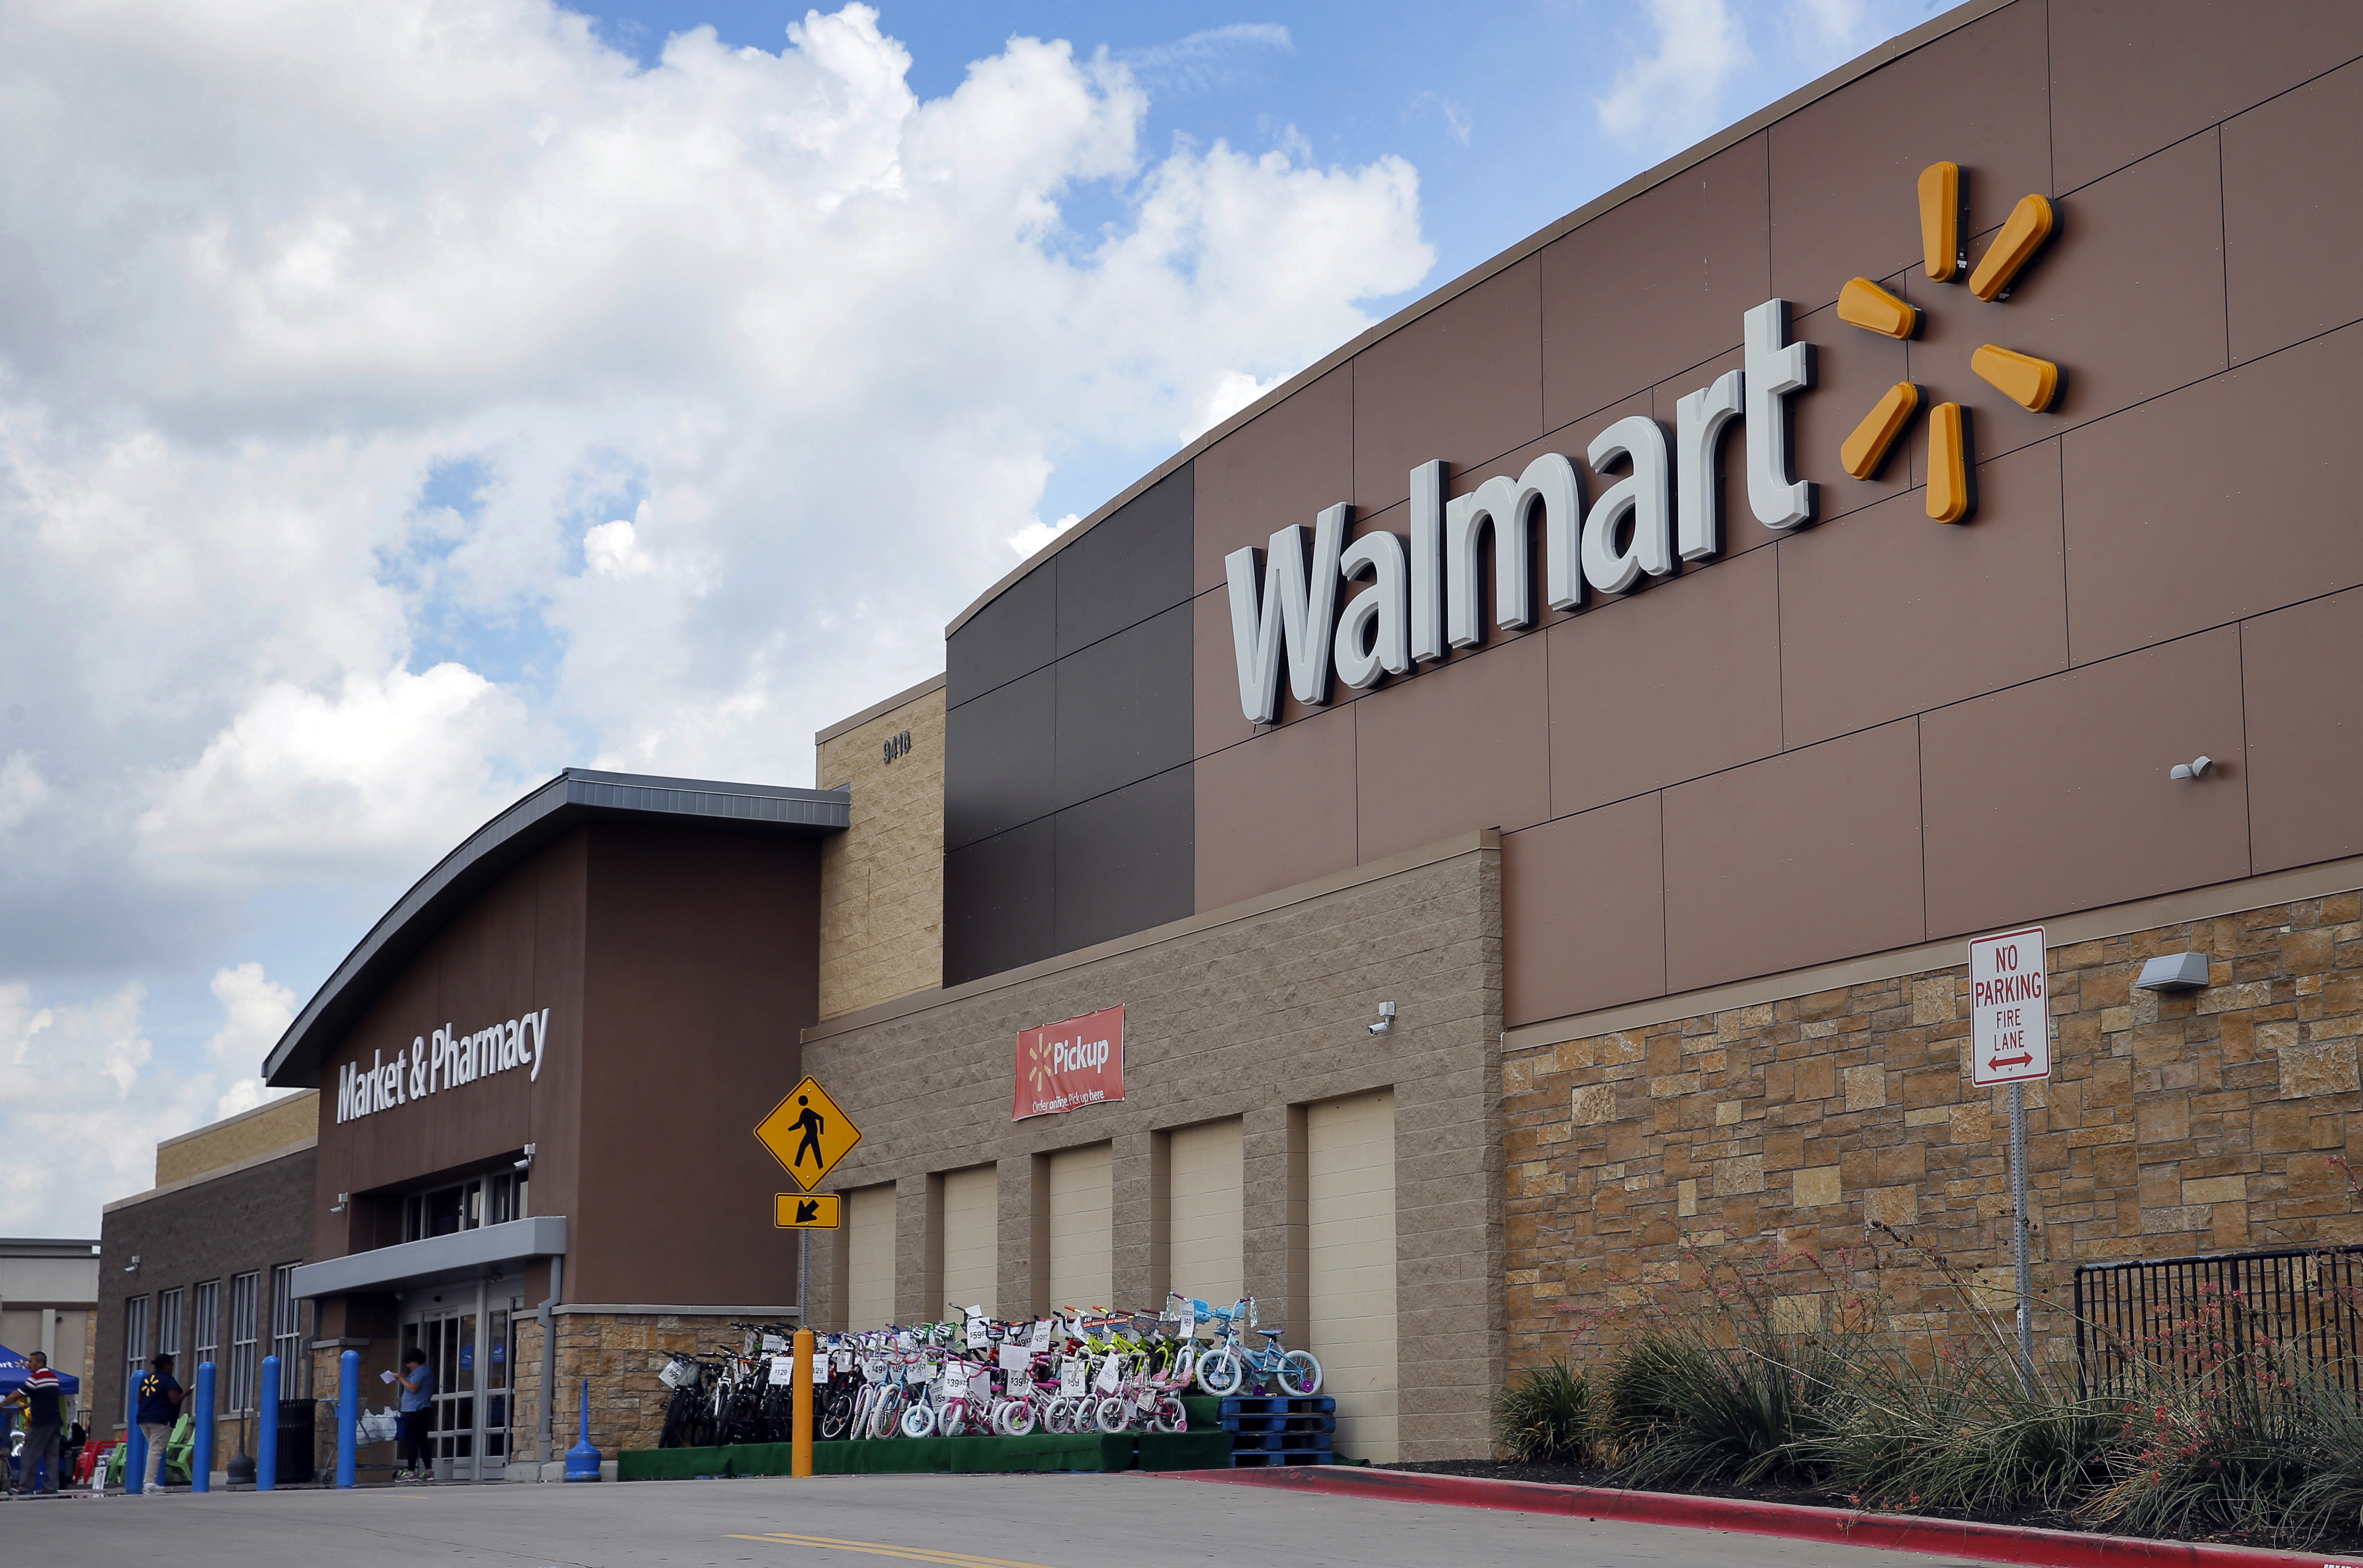 Climate Companies Q A FILE - In an Aug. 26, 2016 file photo, people walk in and out of a Walmart store, in Dallas. President Donald Trump's decision to abandon the Paris climate agreement will have different impacts on different US companies, depending on what they make and whether they do business overseas. Walmart, which launched program in April 2017 to remove one gigaton of emissions from its supply chain by 2030, said after Trump's announcement that its own commitment to renewable energy and lower emissions was good for business and the environment. (AP Photo/Tony Gutierrez, File)